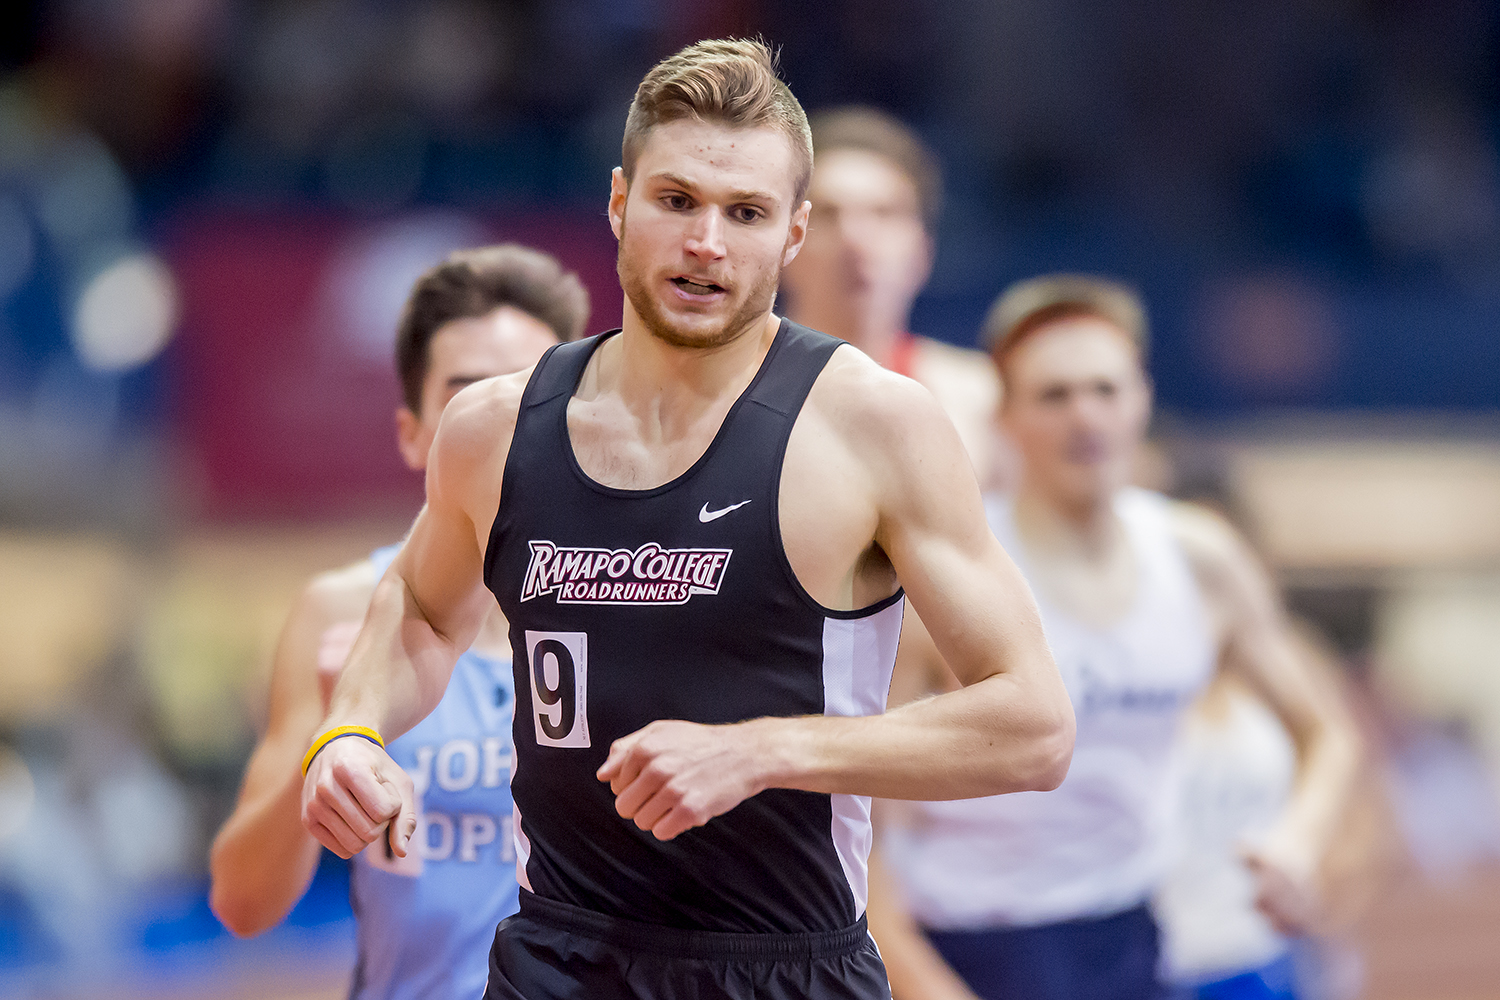 DISTANCE MEDLEY RELAY TEAM GRABS FOURTH PLACE FINISH AT BU VALENTINE INVITE